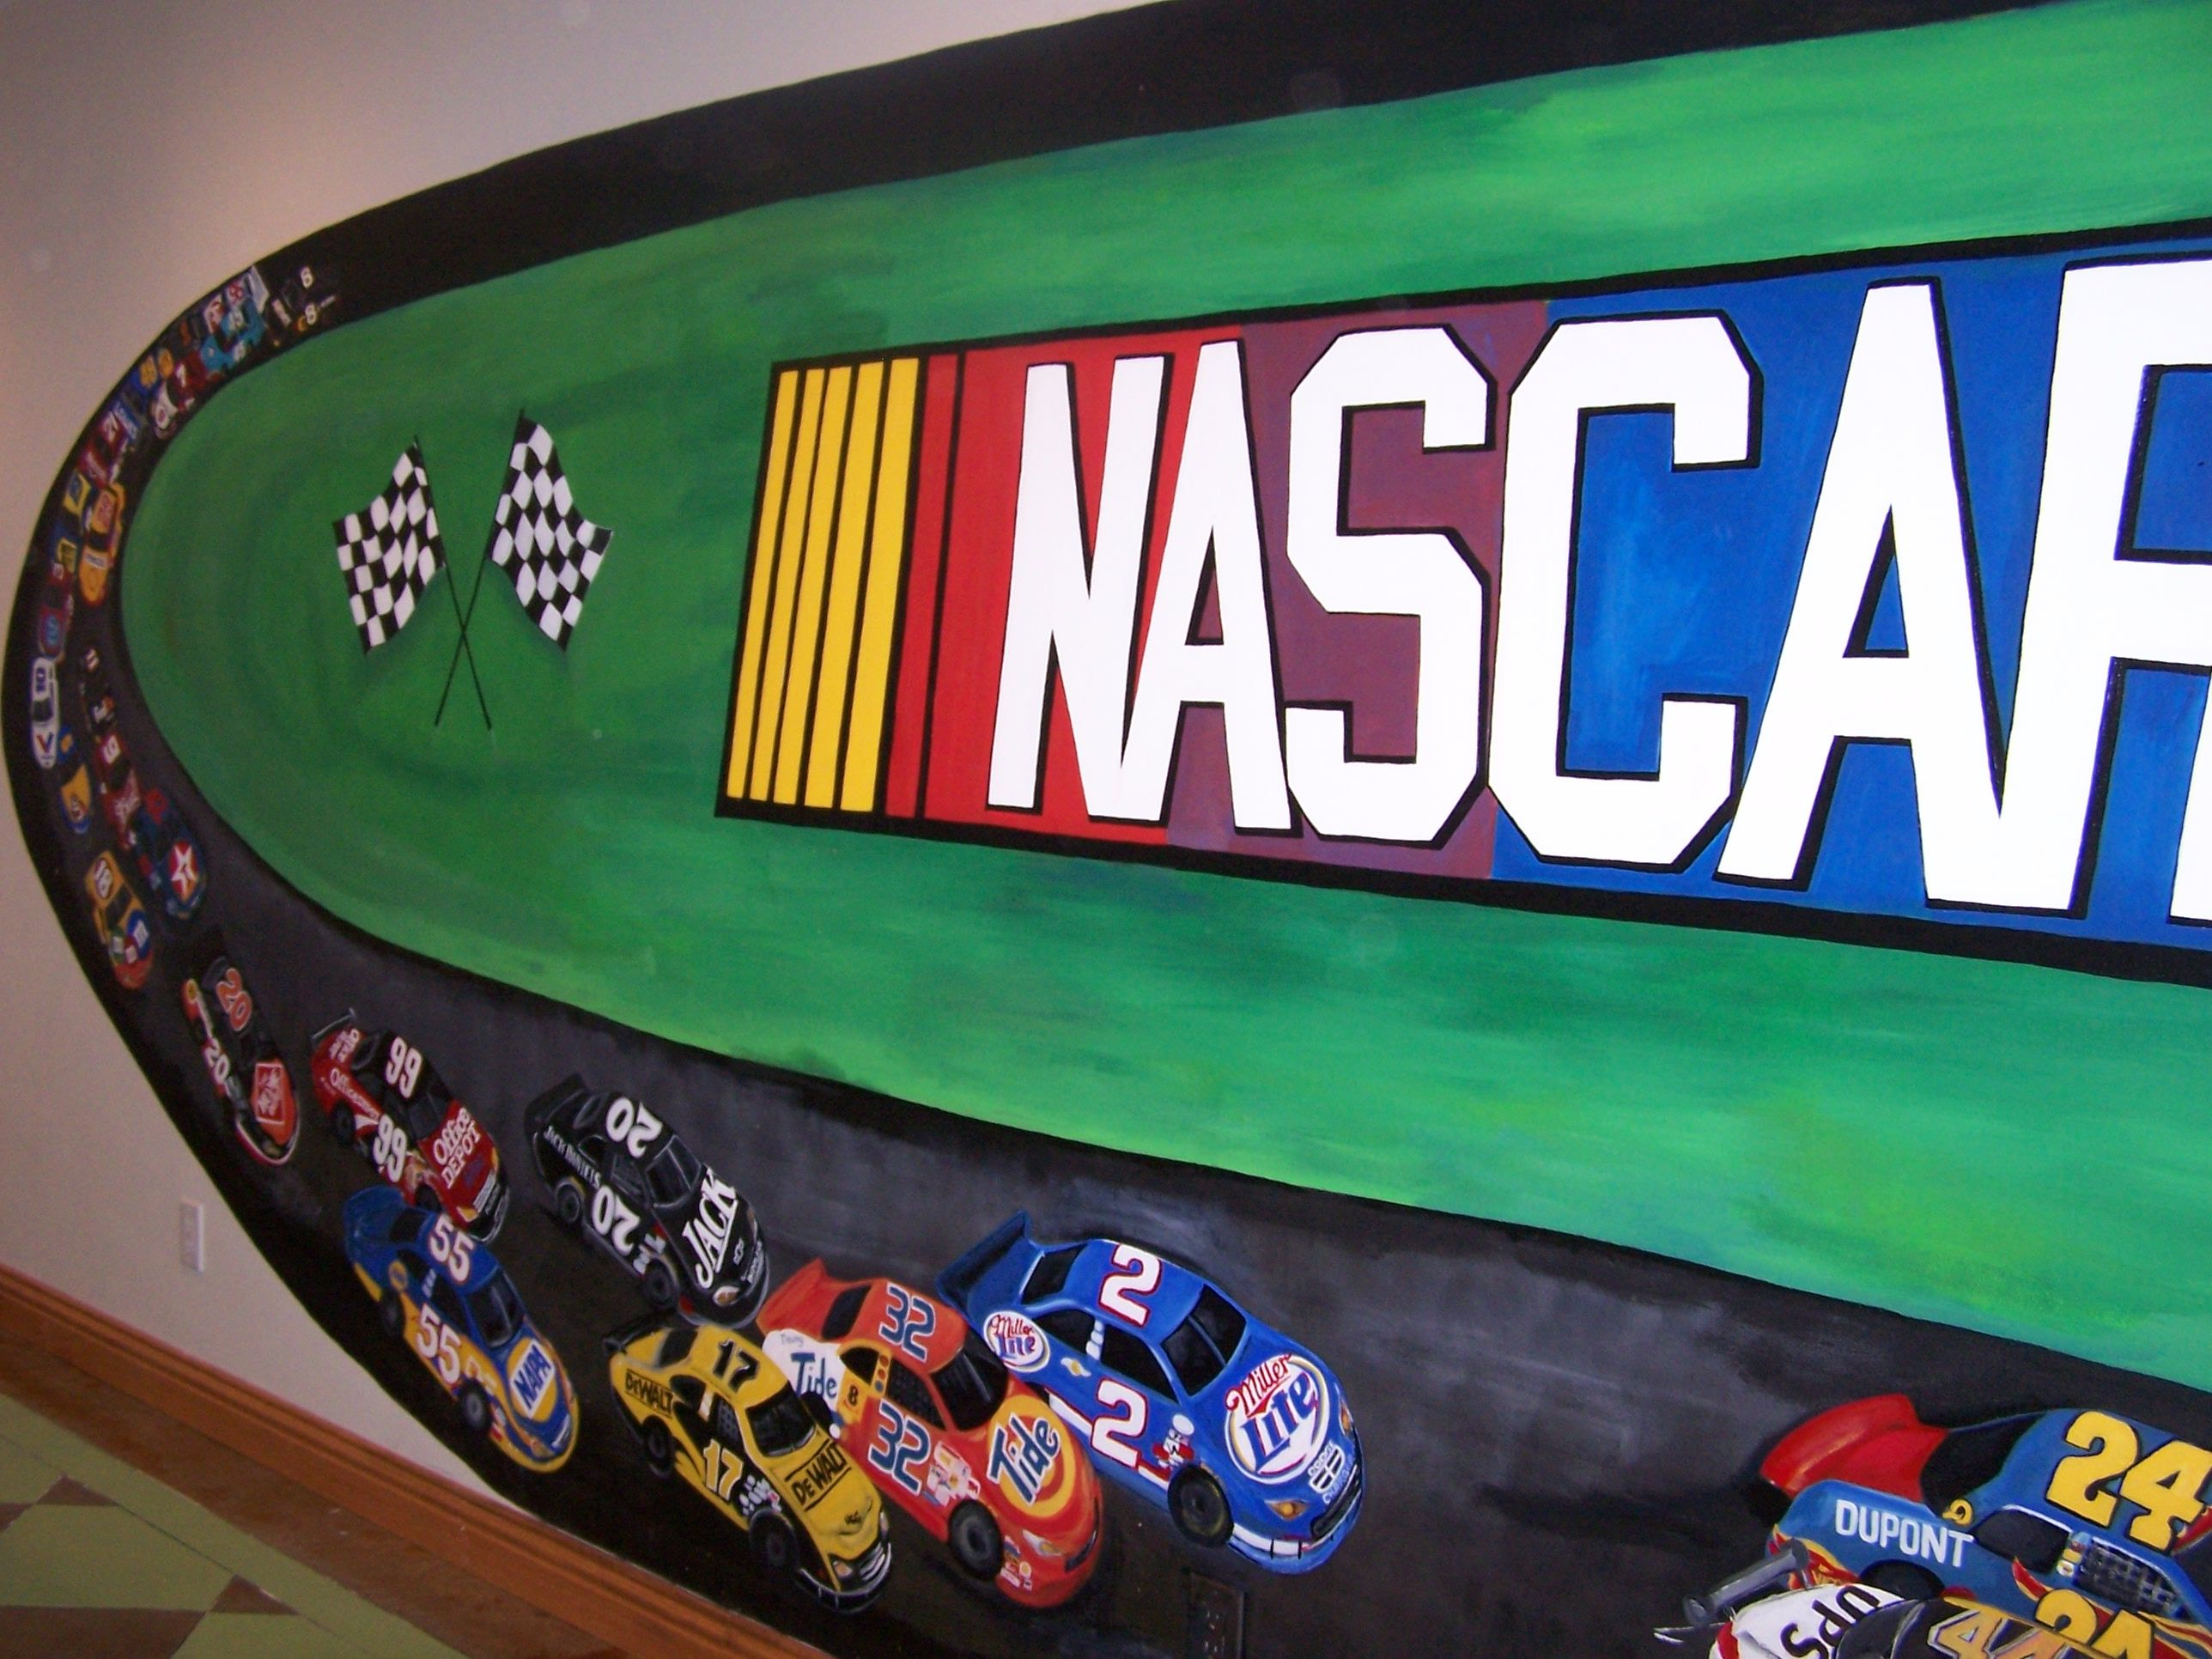 Nascar Room Decor For